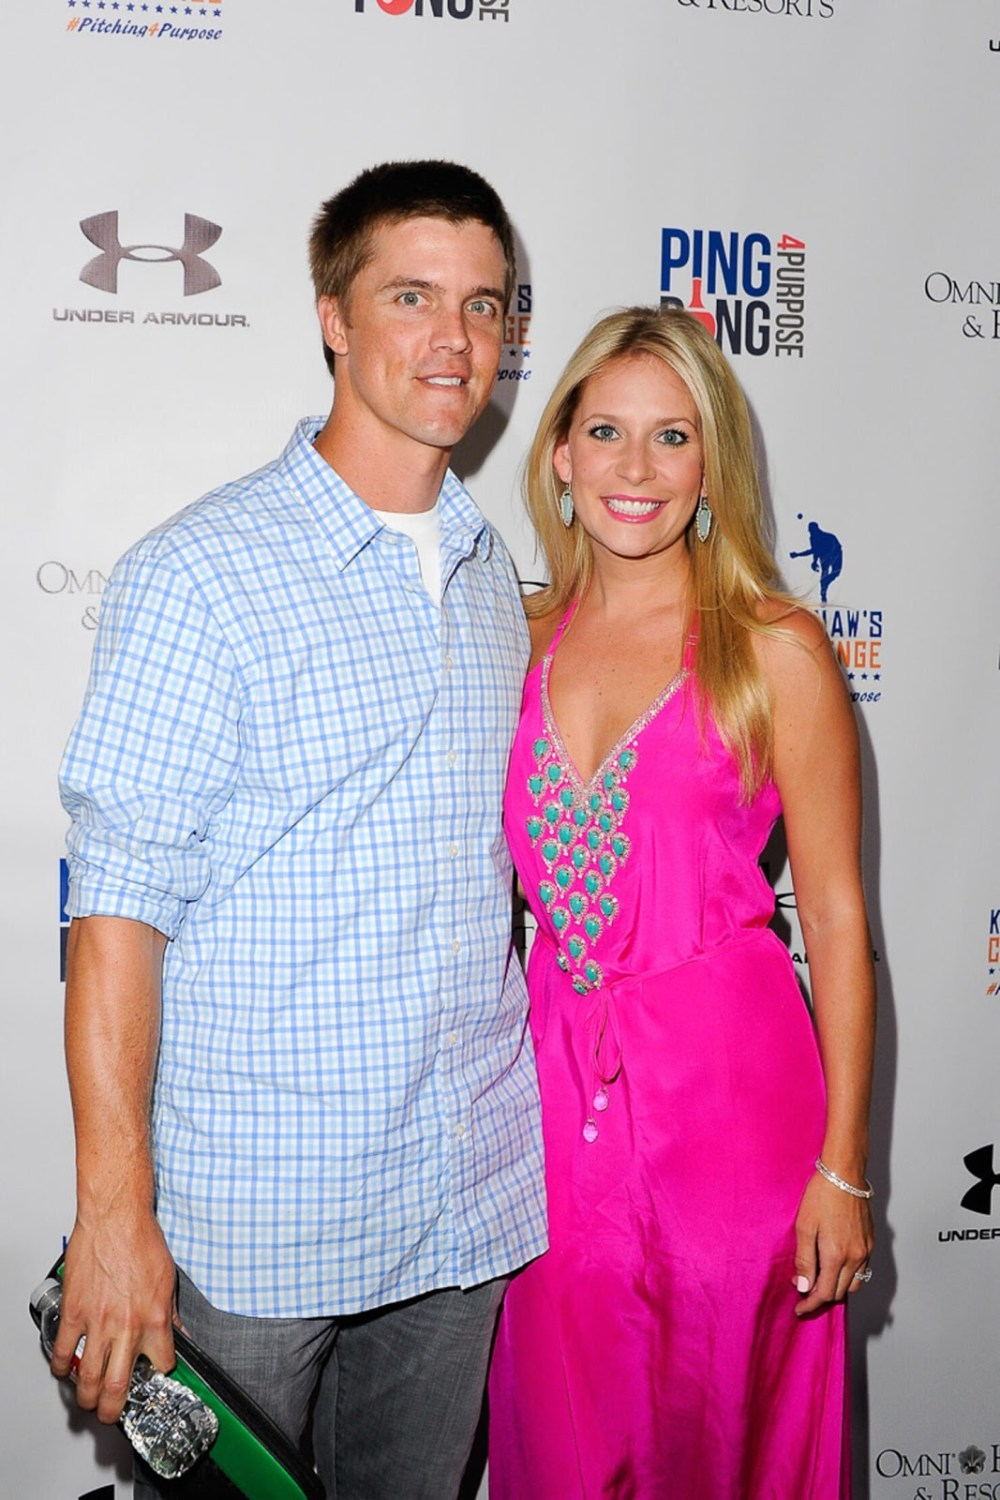 The Hottest Baseball Wives And Girlfriends